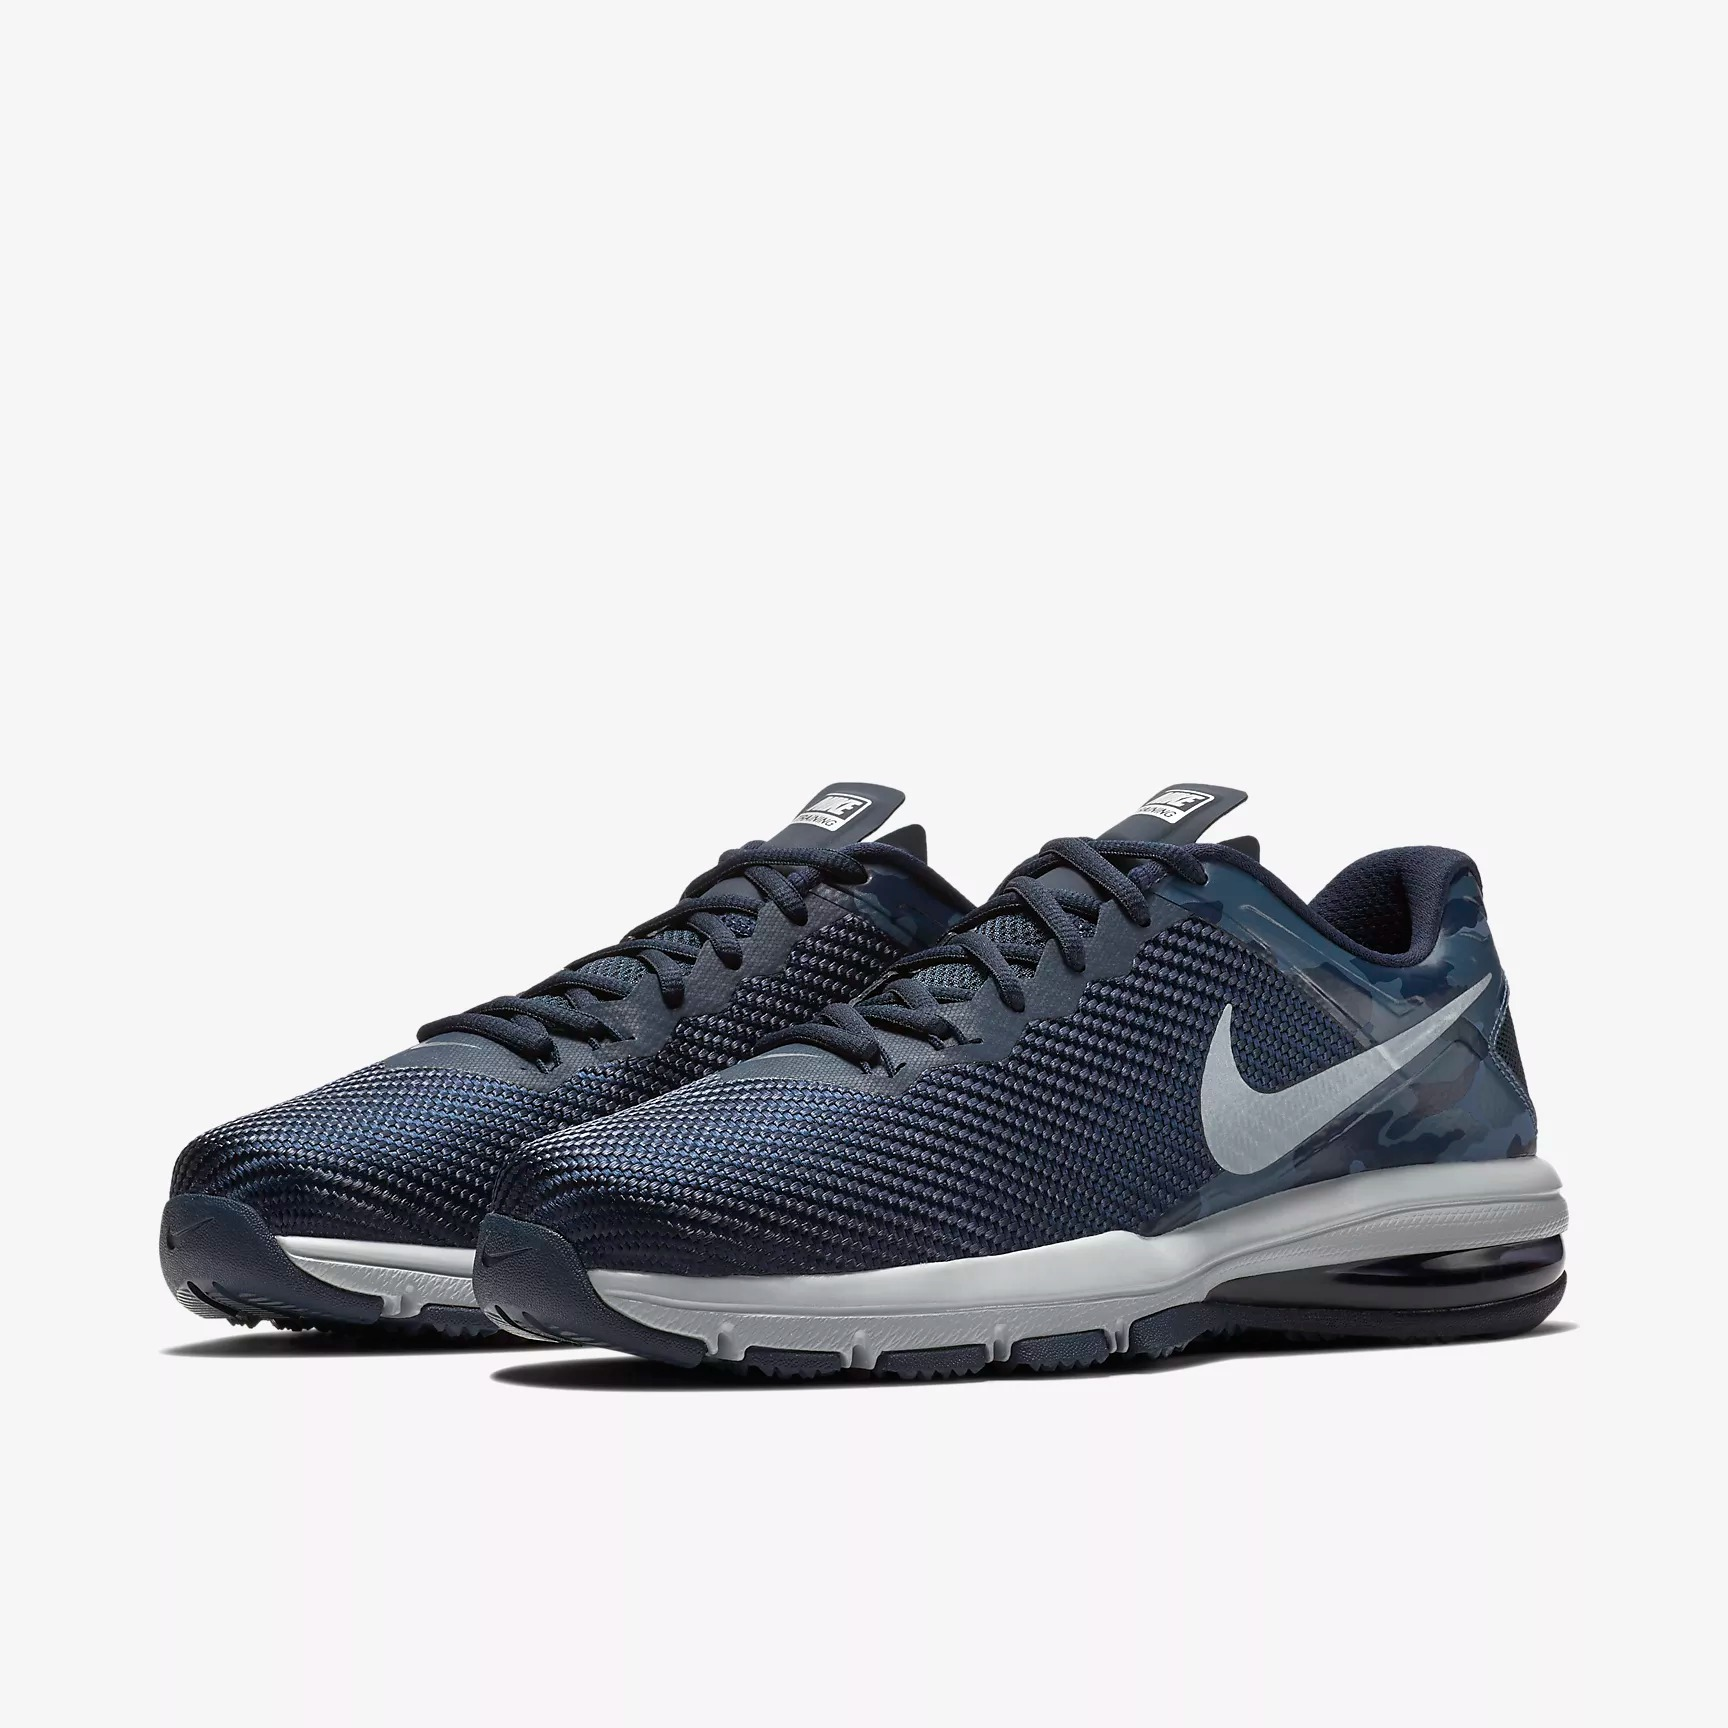 f2cb08101a4e Nike Air Max Full Ride TR 1.5 Training Shoes Size 42.5 - SPORT SHOES  TRAINING SHOES - Superfanas.lt